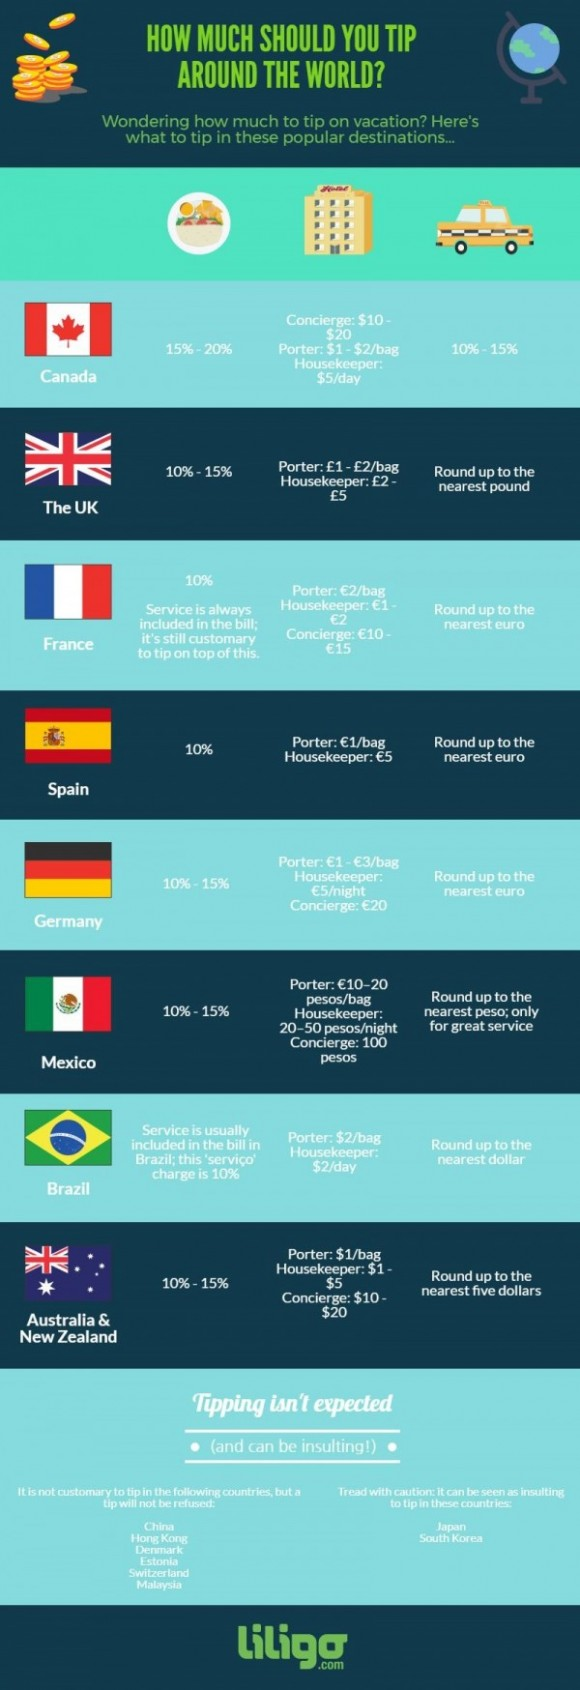 Tipping around the world infographic